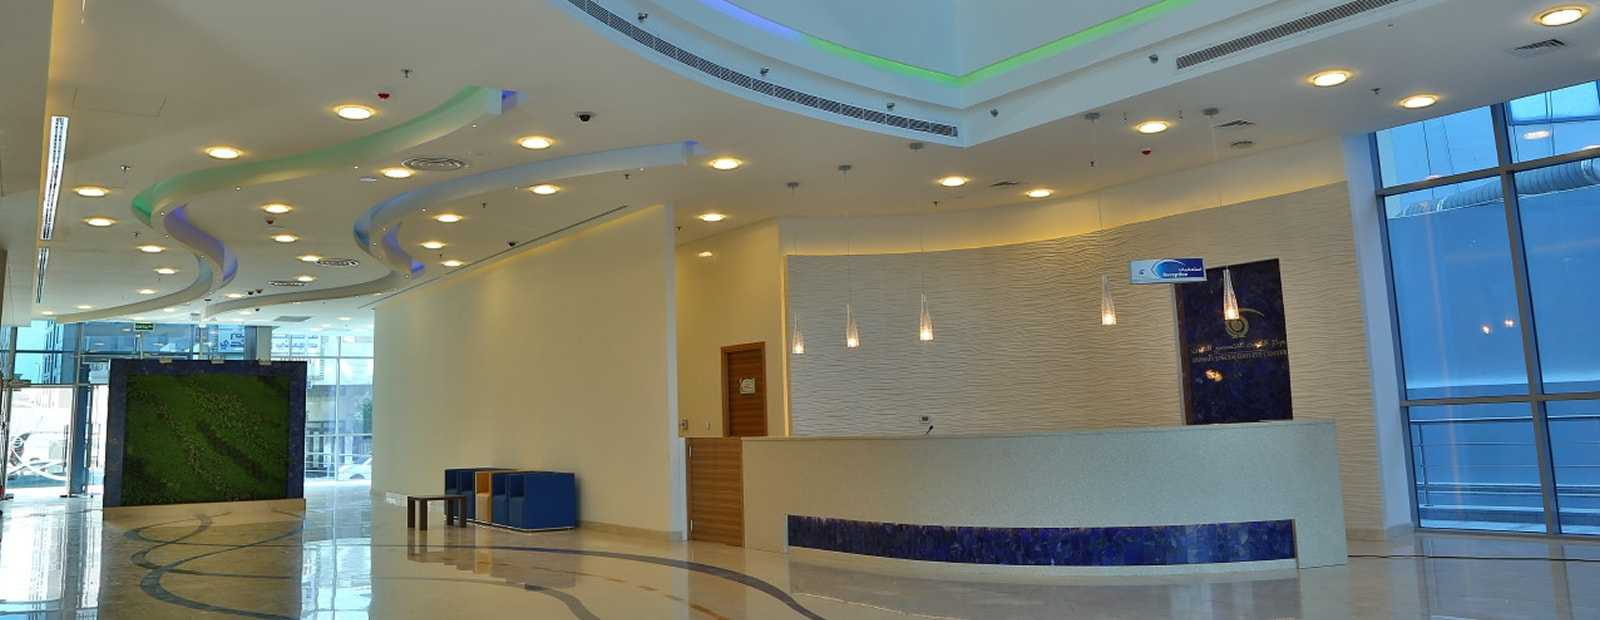 kuwait specialized eye center